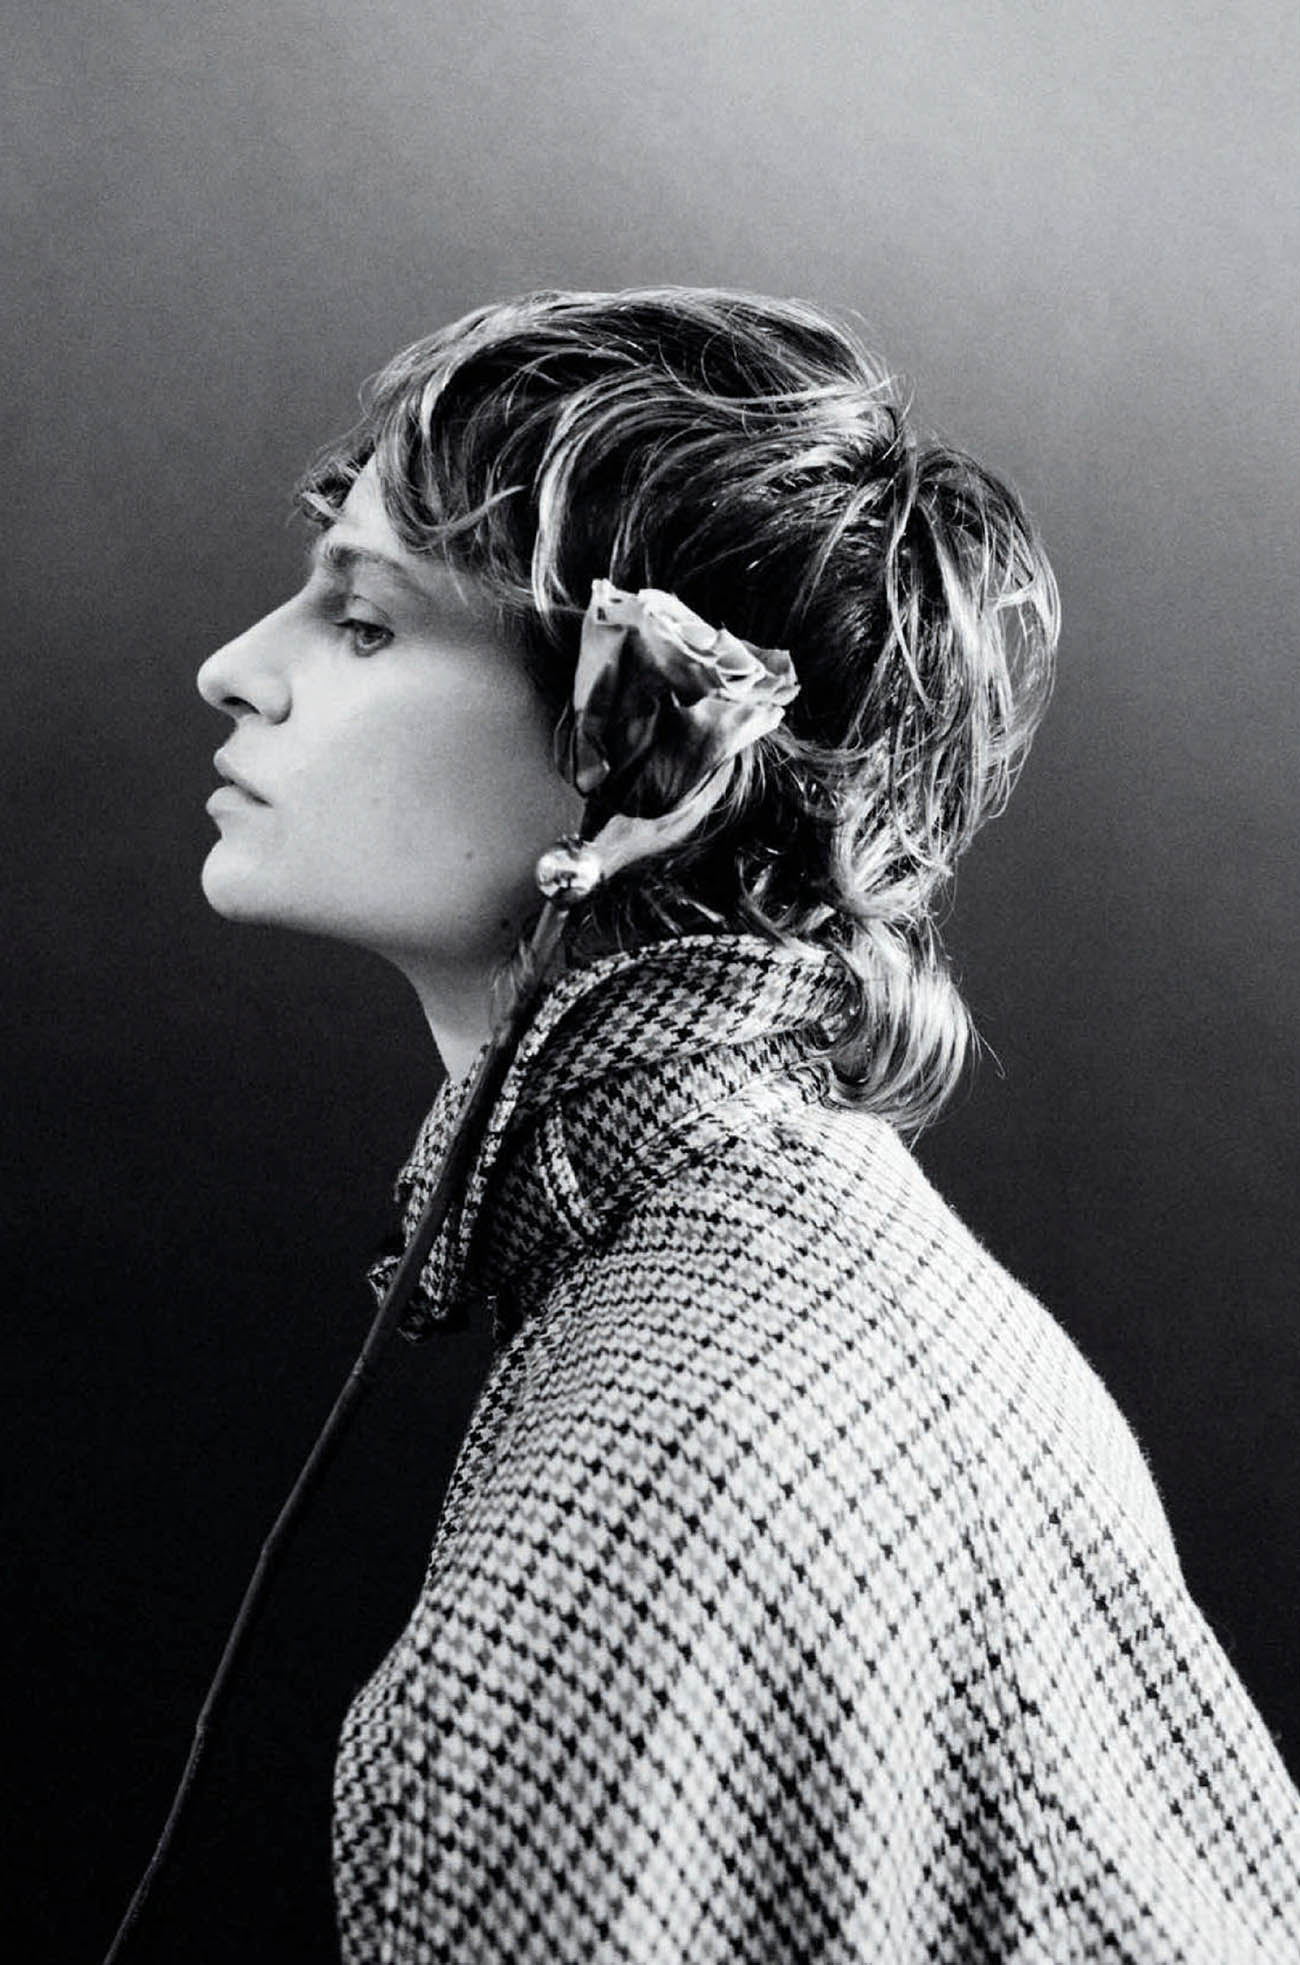 Christine and the Queens by Camille Vivier for Vogue Spain October 2020